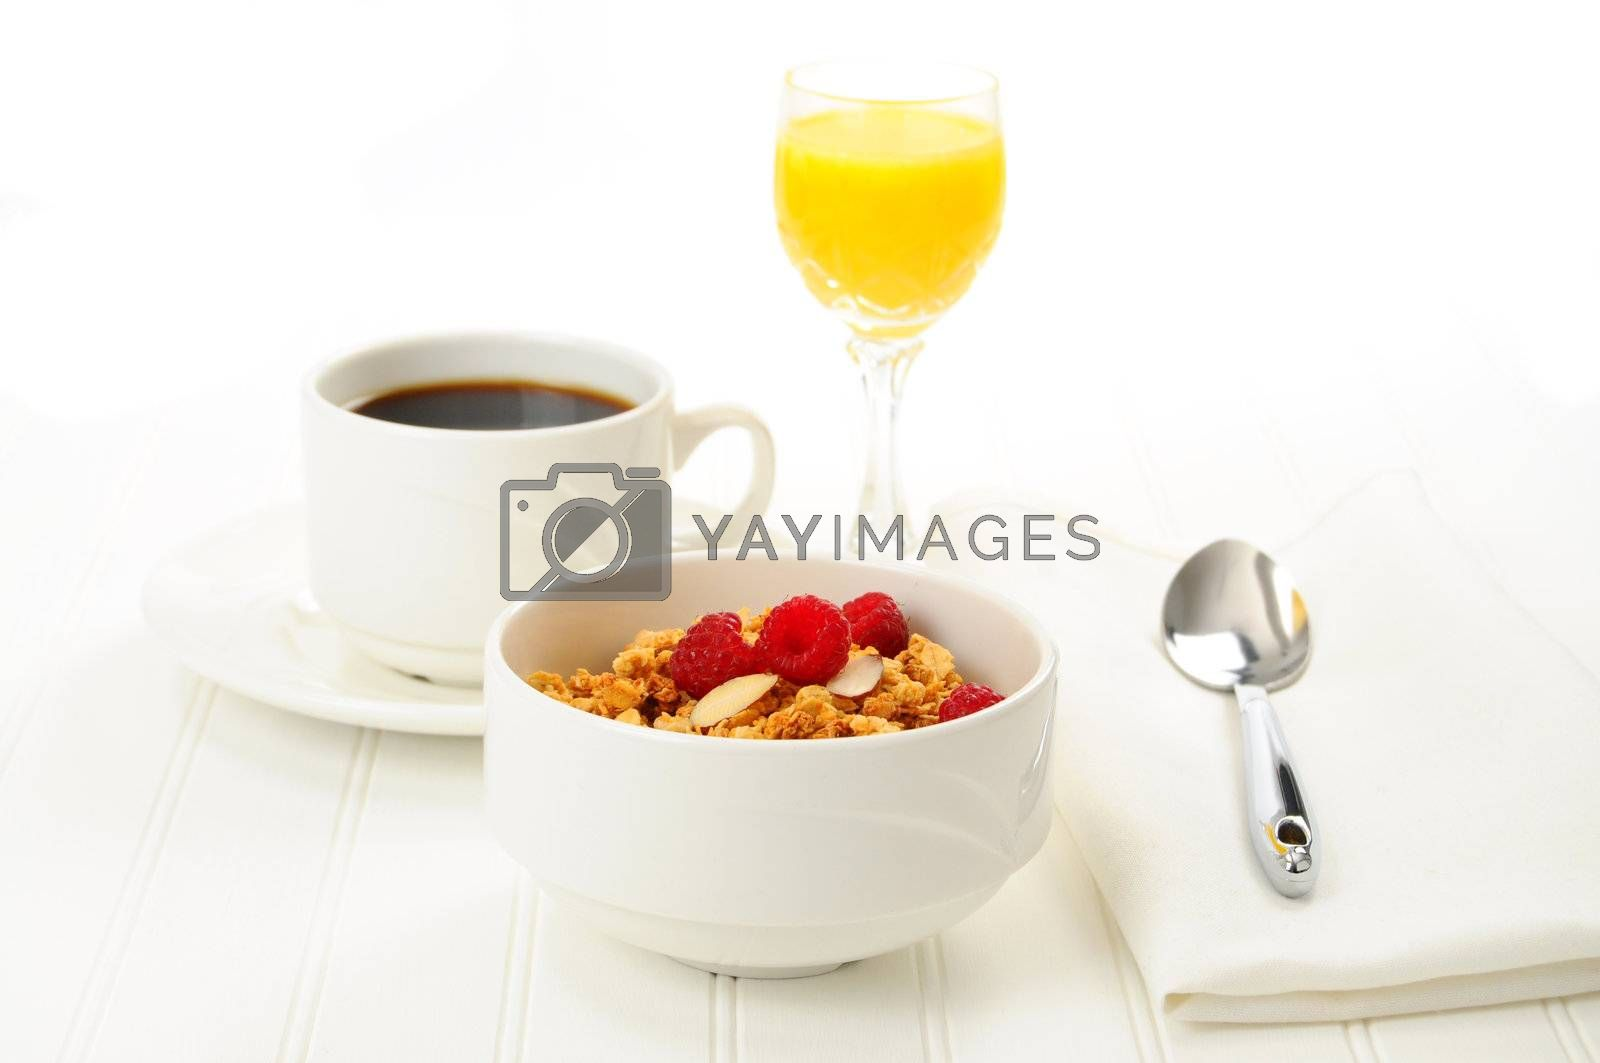 Royalty free image of Breakfast by billberryphotography